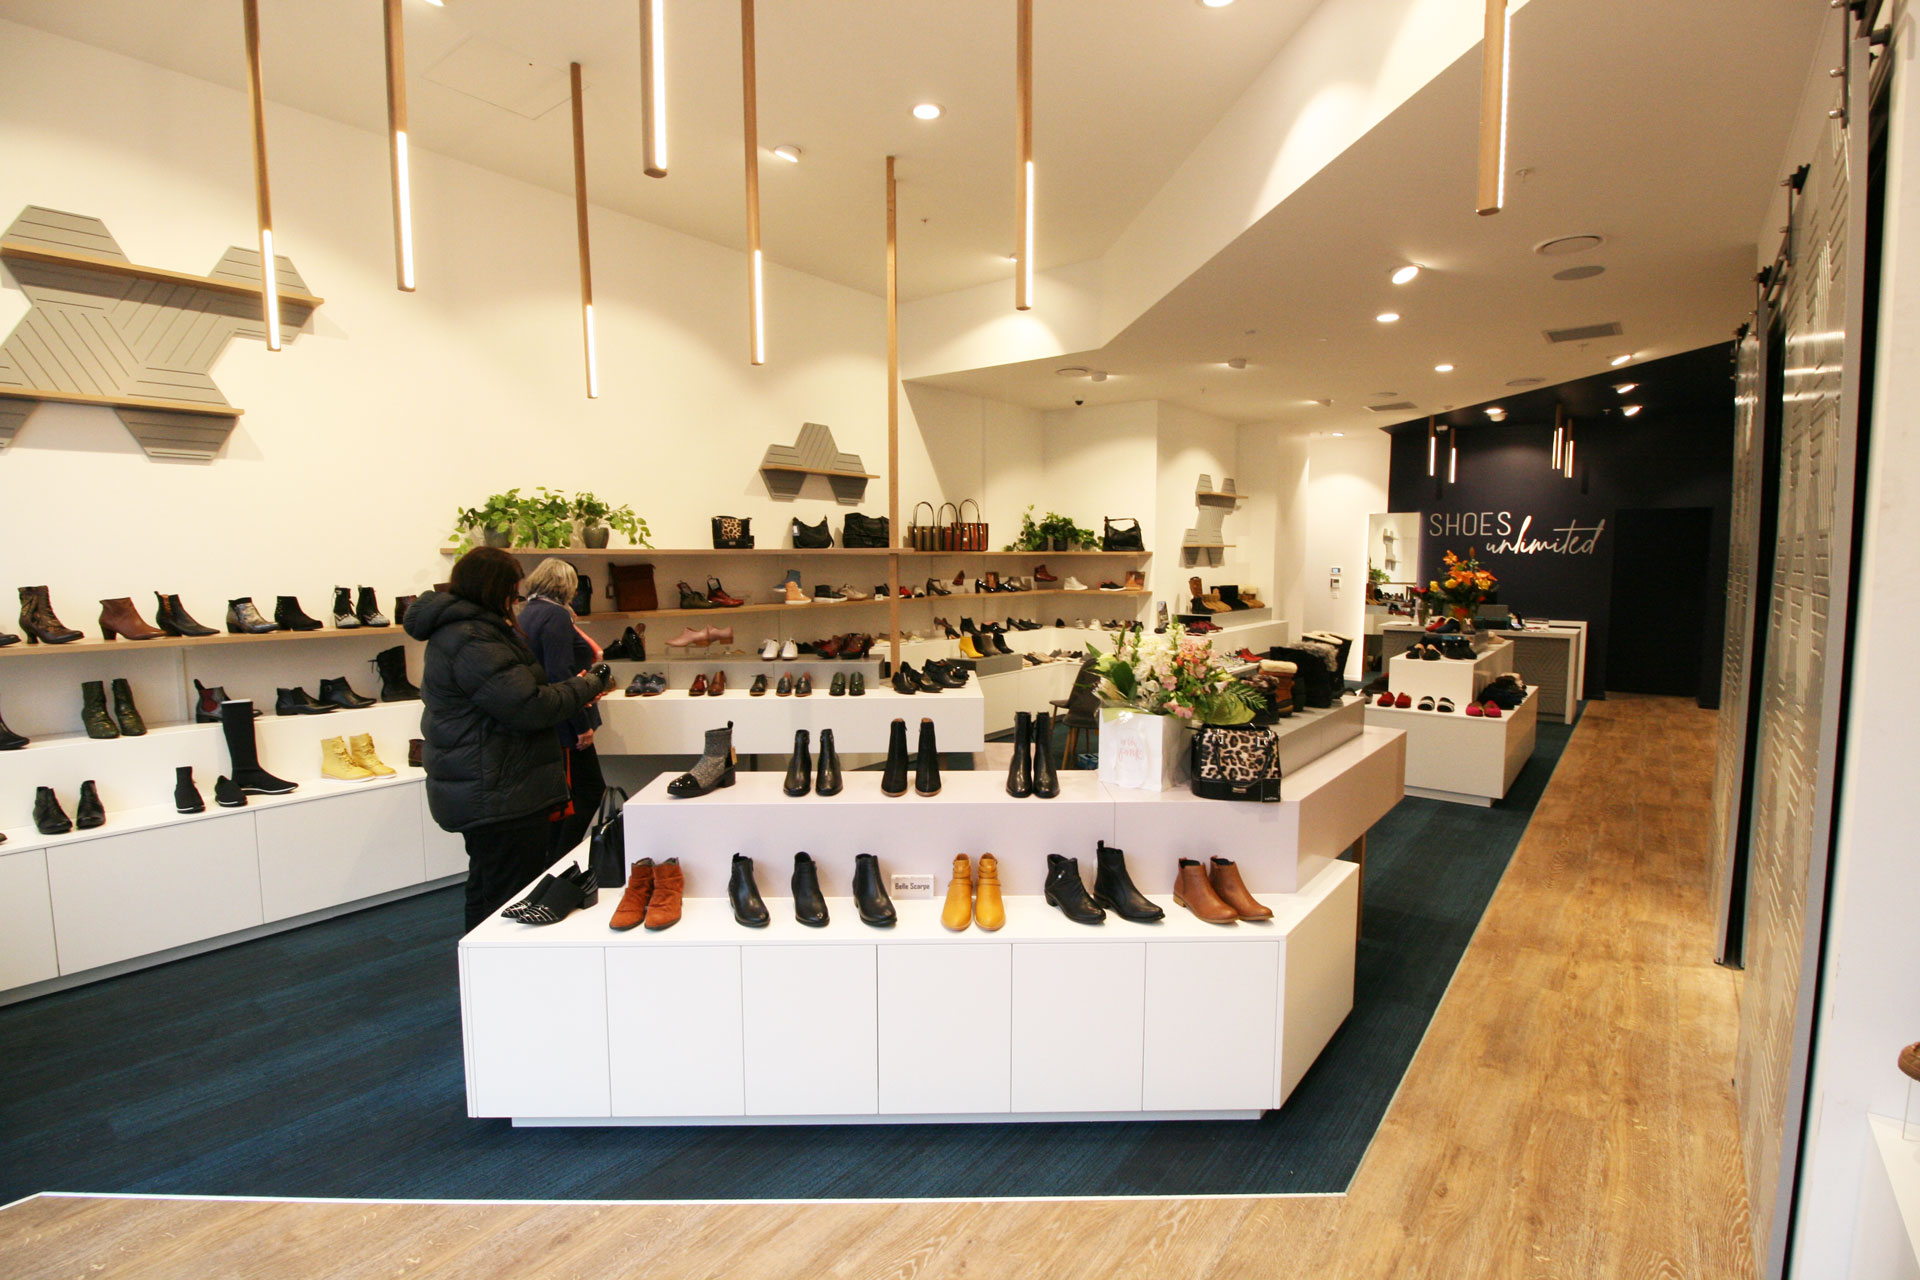 Shoe-shop-fitout-Queenstown-1